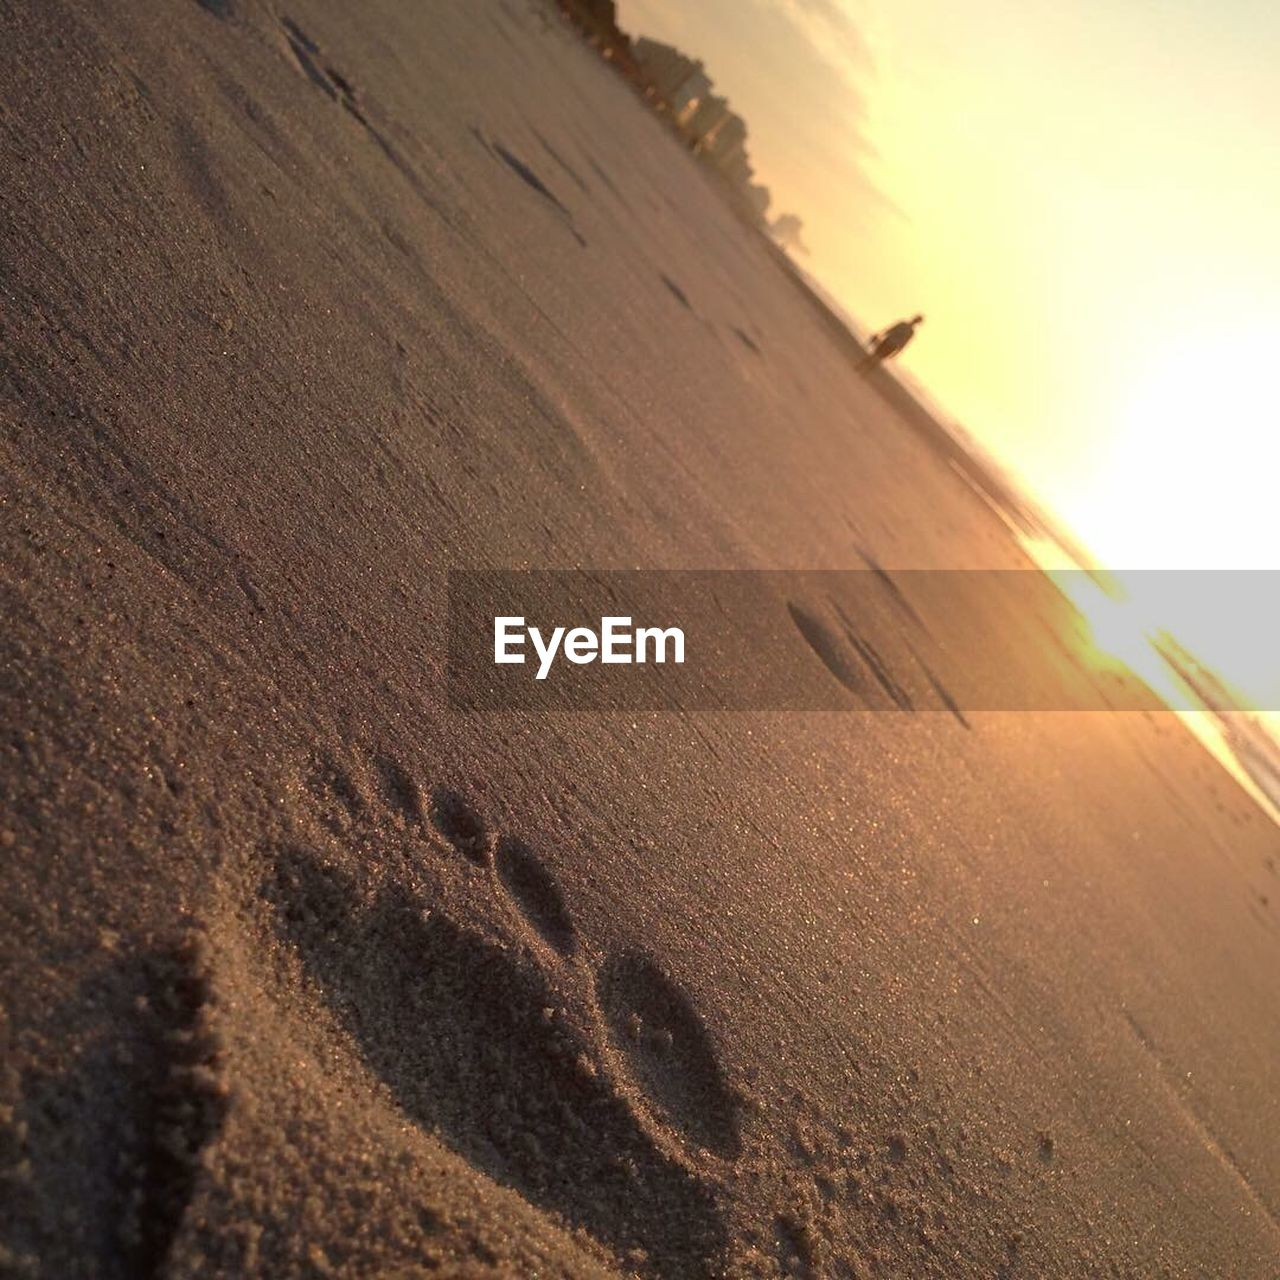 sunset, nature, outdoors, sun, no people, sand, sunlight, snow, winter, tranquility, track - imprint, cold temperature, scenics, beauty in nature, landscape, day, sky, close-up